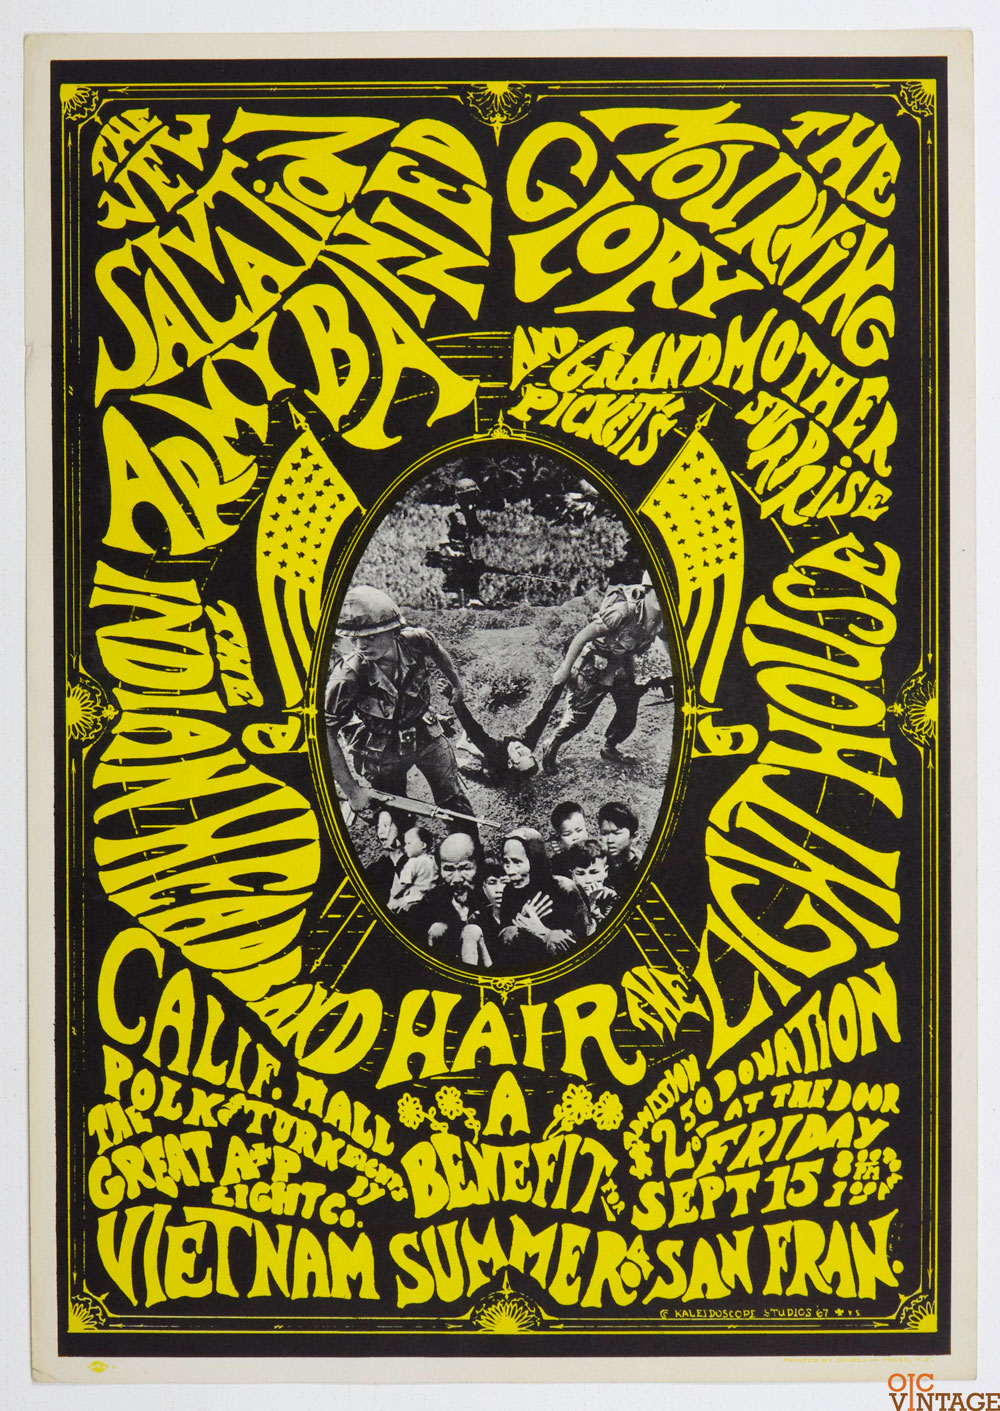 A Benefit for Vietnam Poster 1967 Sep 16 The Indian Headband California Hall